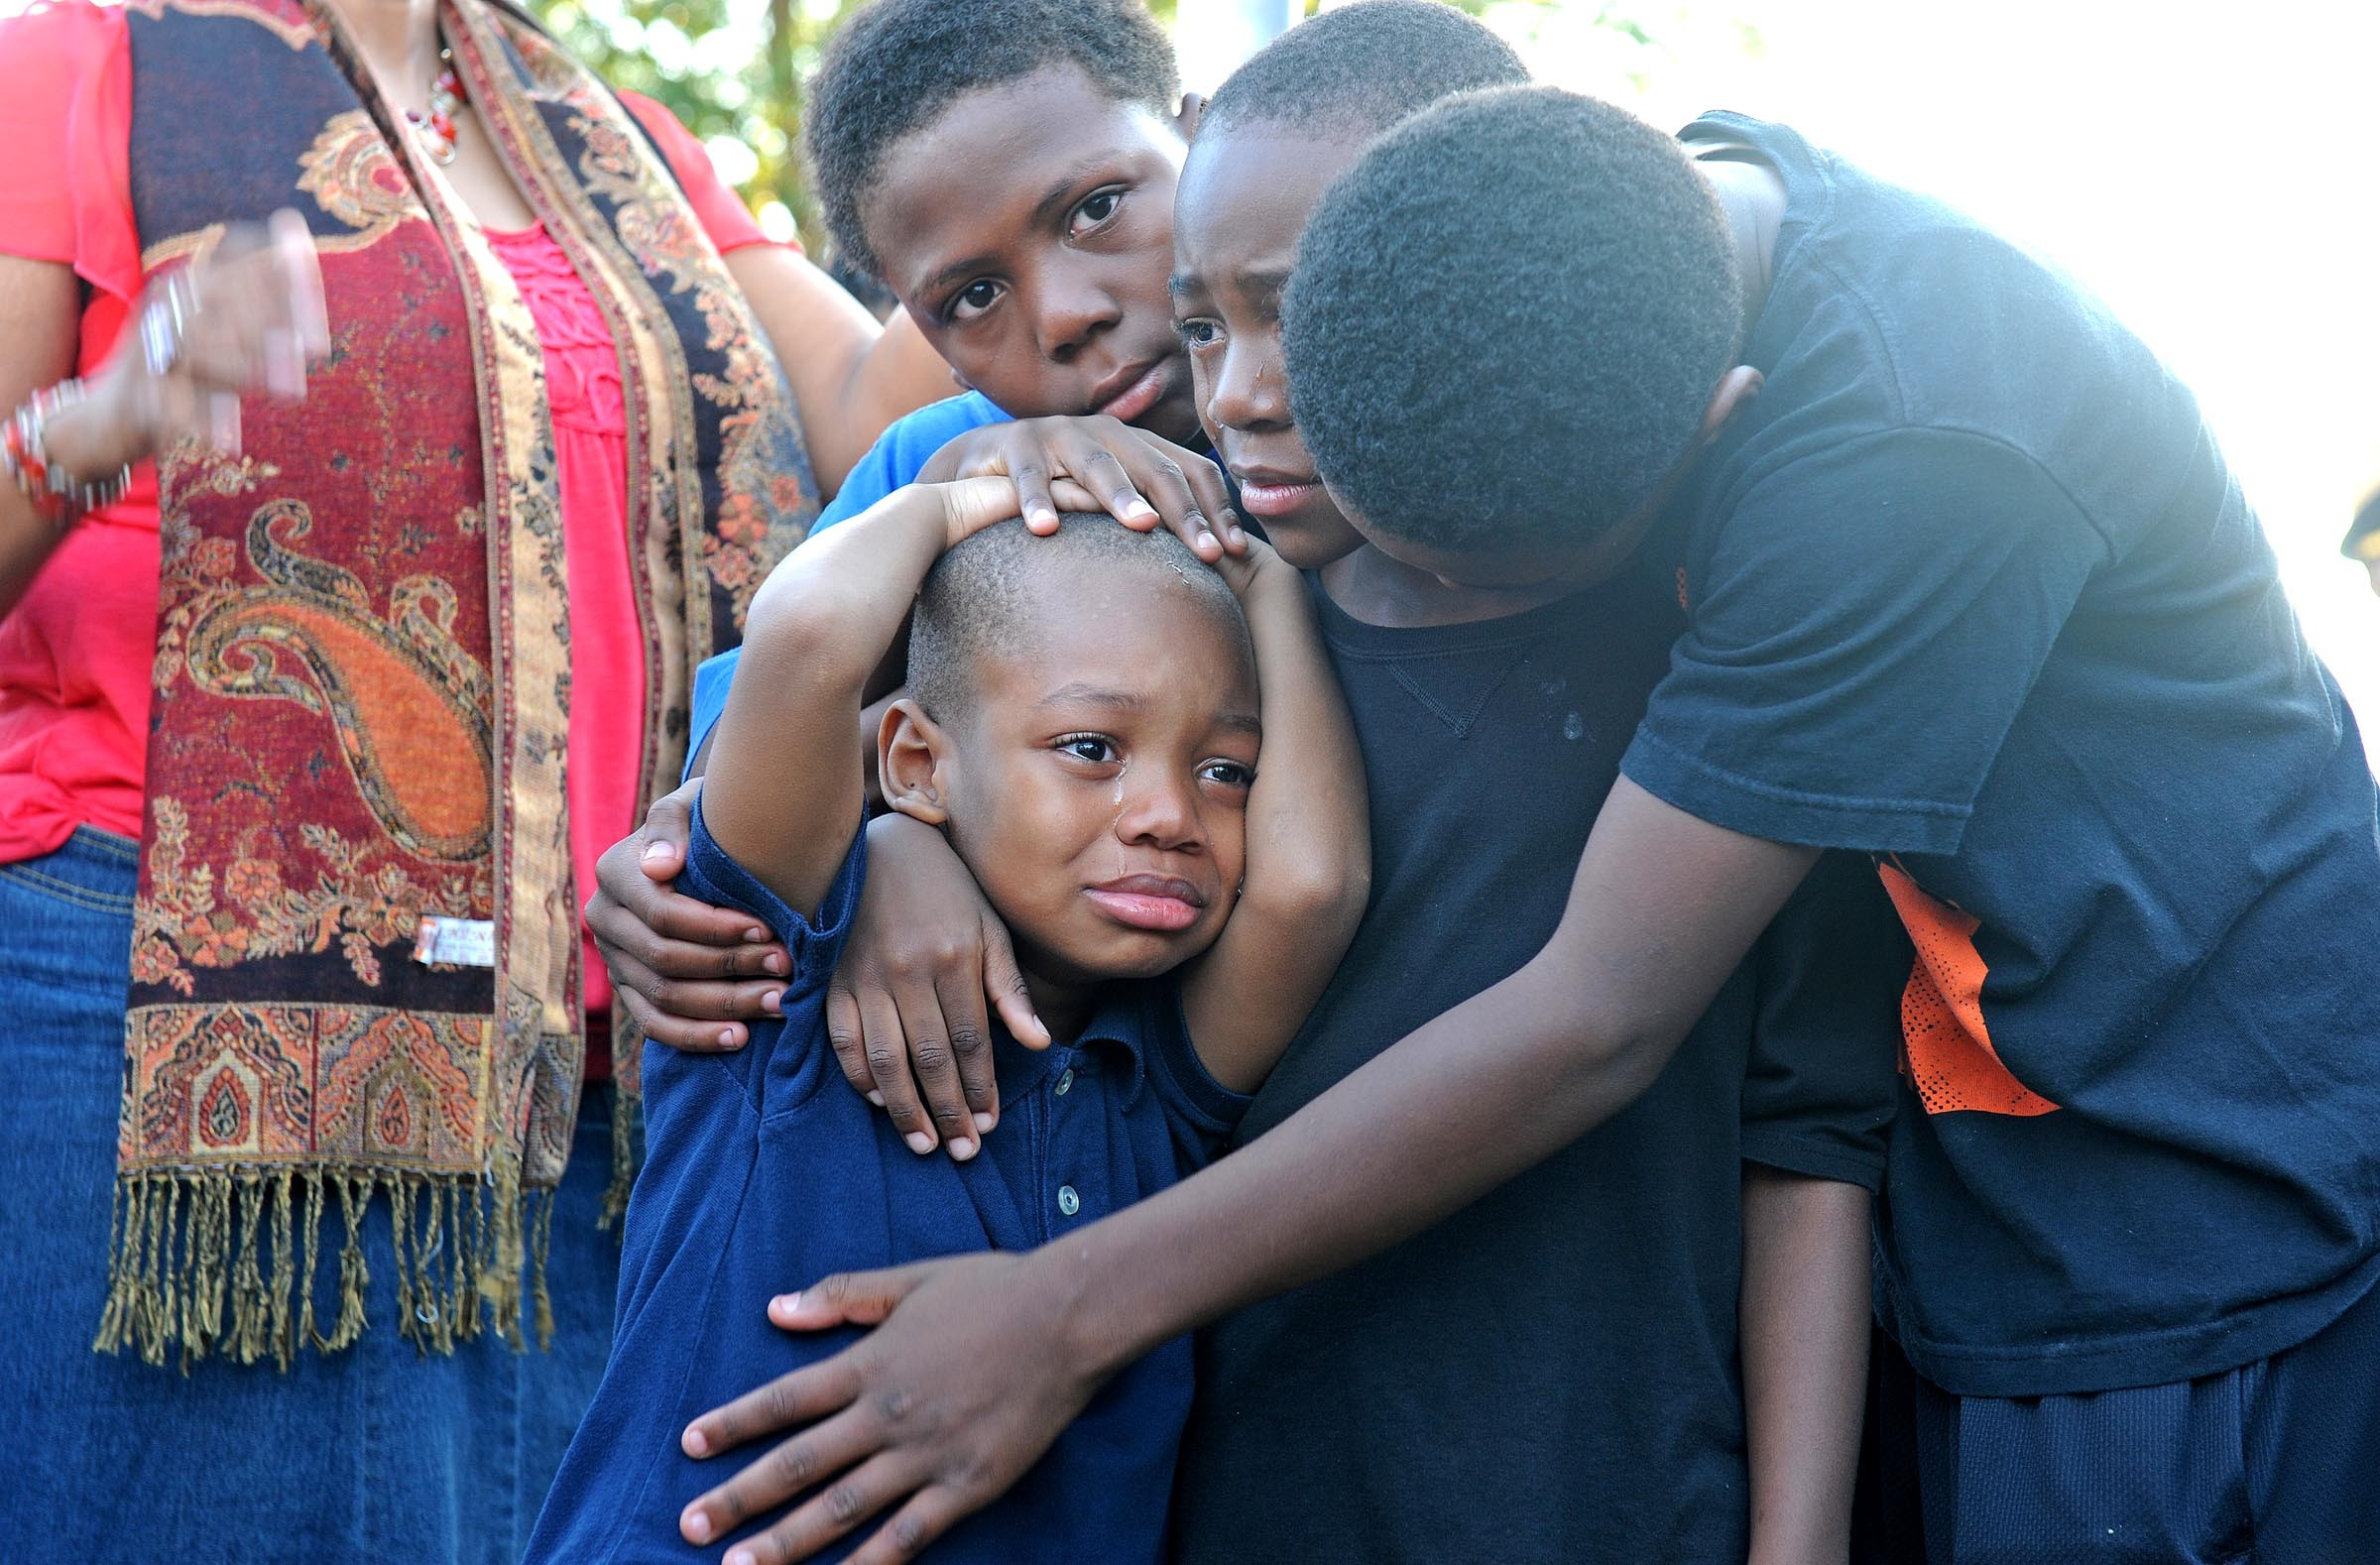 Children comfort each other during a vigil mourning the death of William Crutchfield, whom police found dead in a Mosby Court residence in the early morning hours of Oct. 4, shot multiple times. Crutchfield's death is the ninth homicide in Richmond public housing this year. - SCOTT ELMQUIST